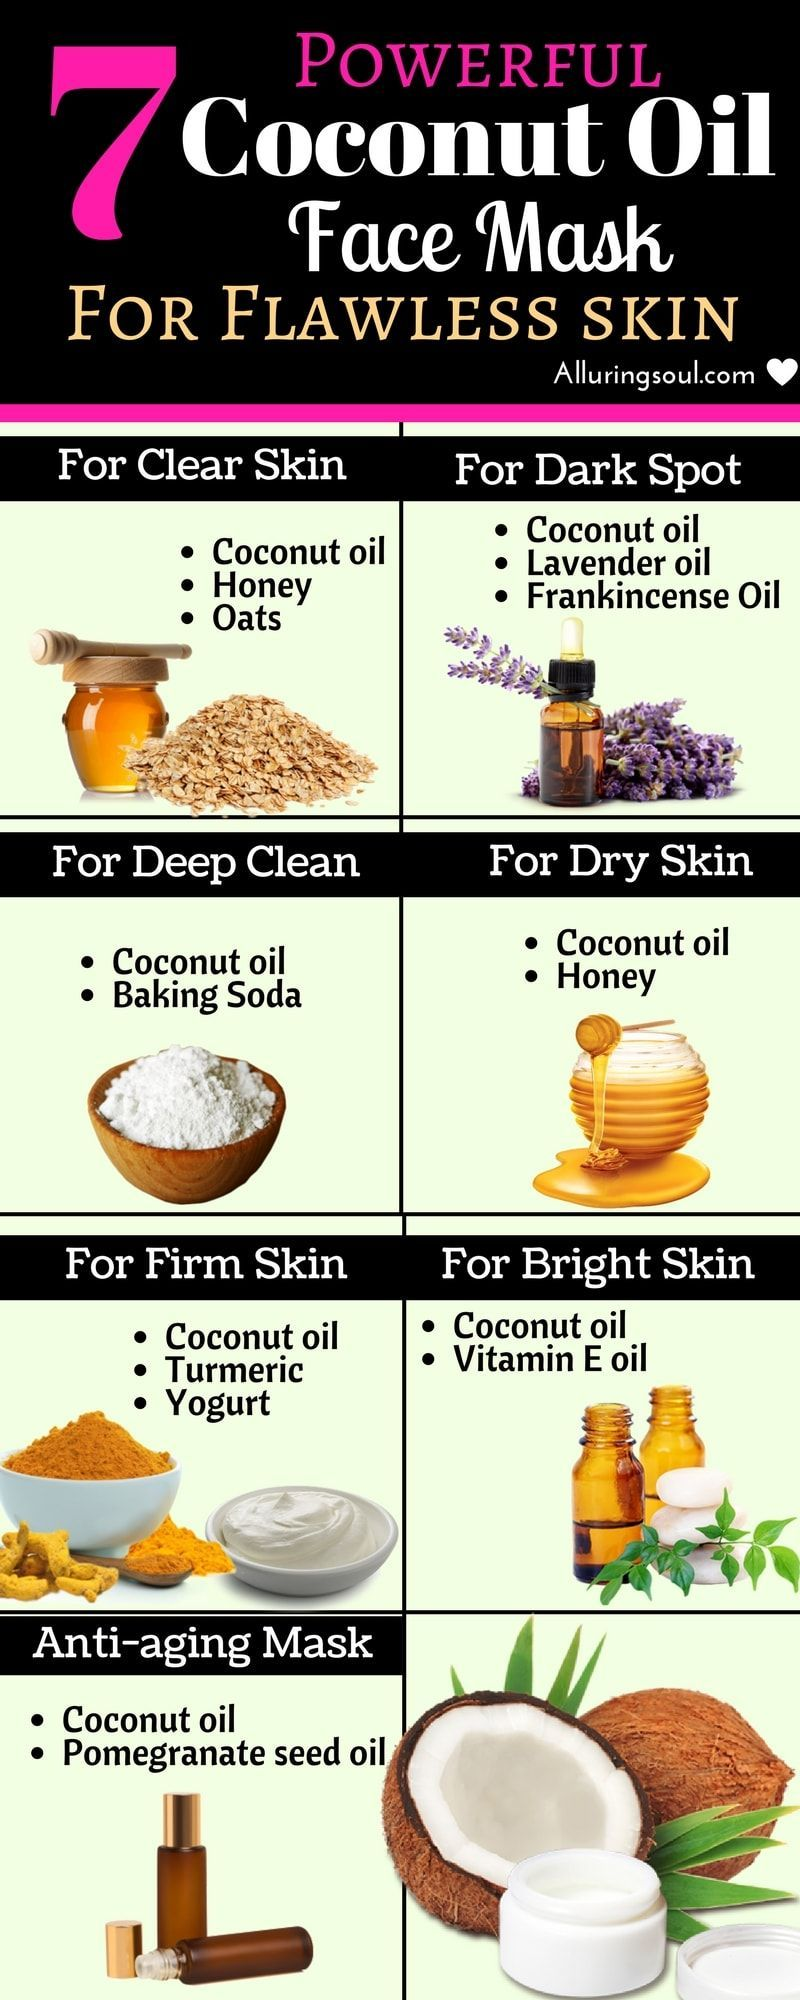 Coconut Oil Face Mask Can Make Your Skin Healthy And Provide Nutrition To Your Skin And Can Solve Your Coconut Oil Face Mask Coconut Oil For Face Homemade Face